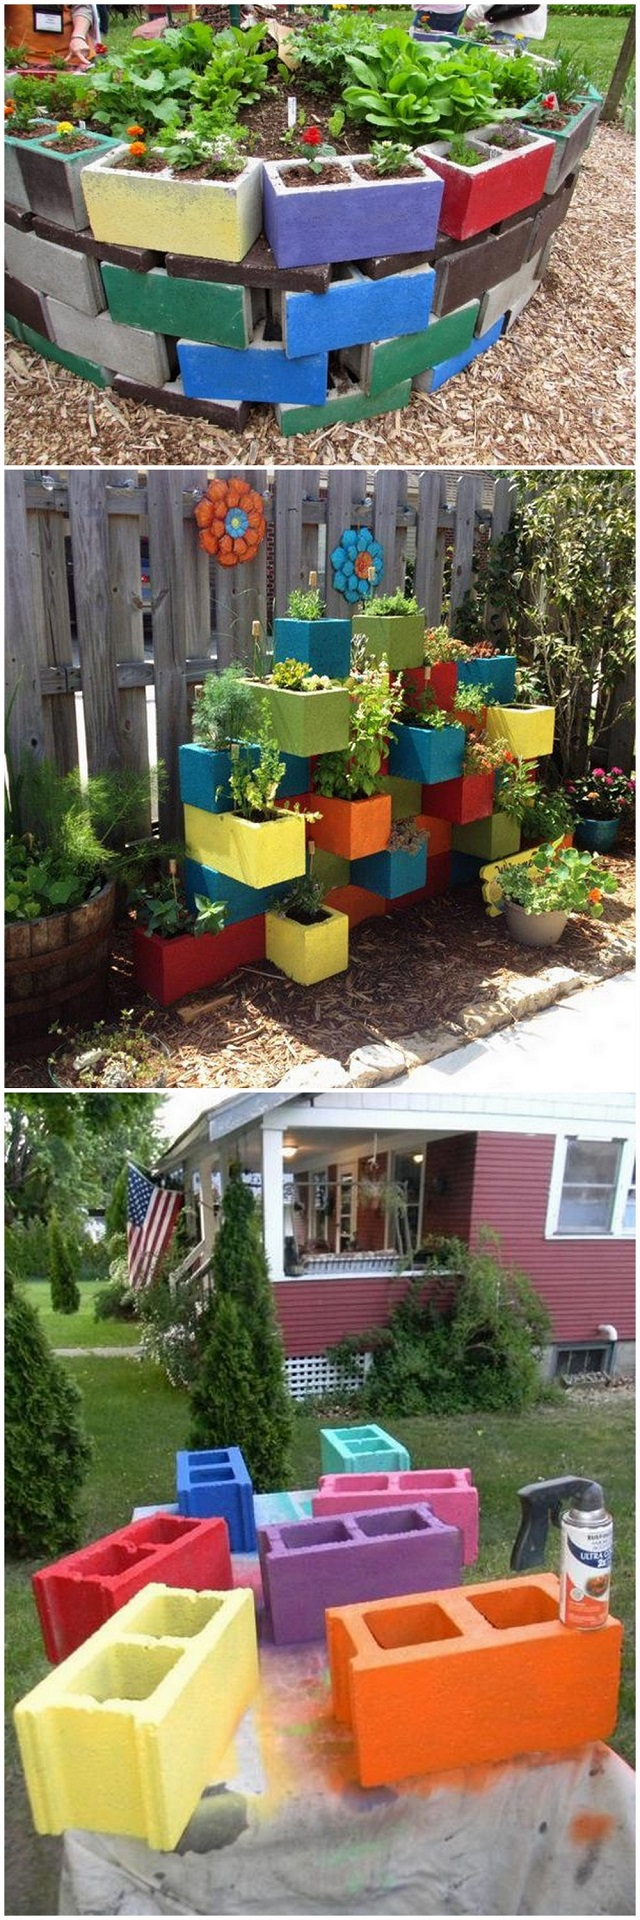 concrete-painting-ideas-planters